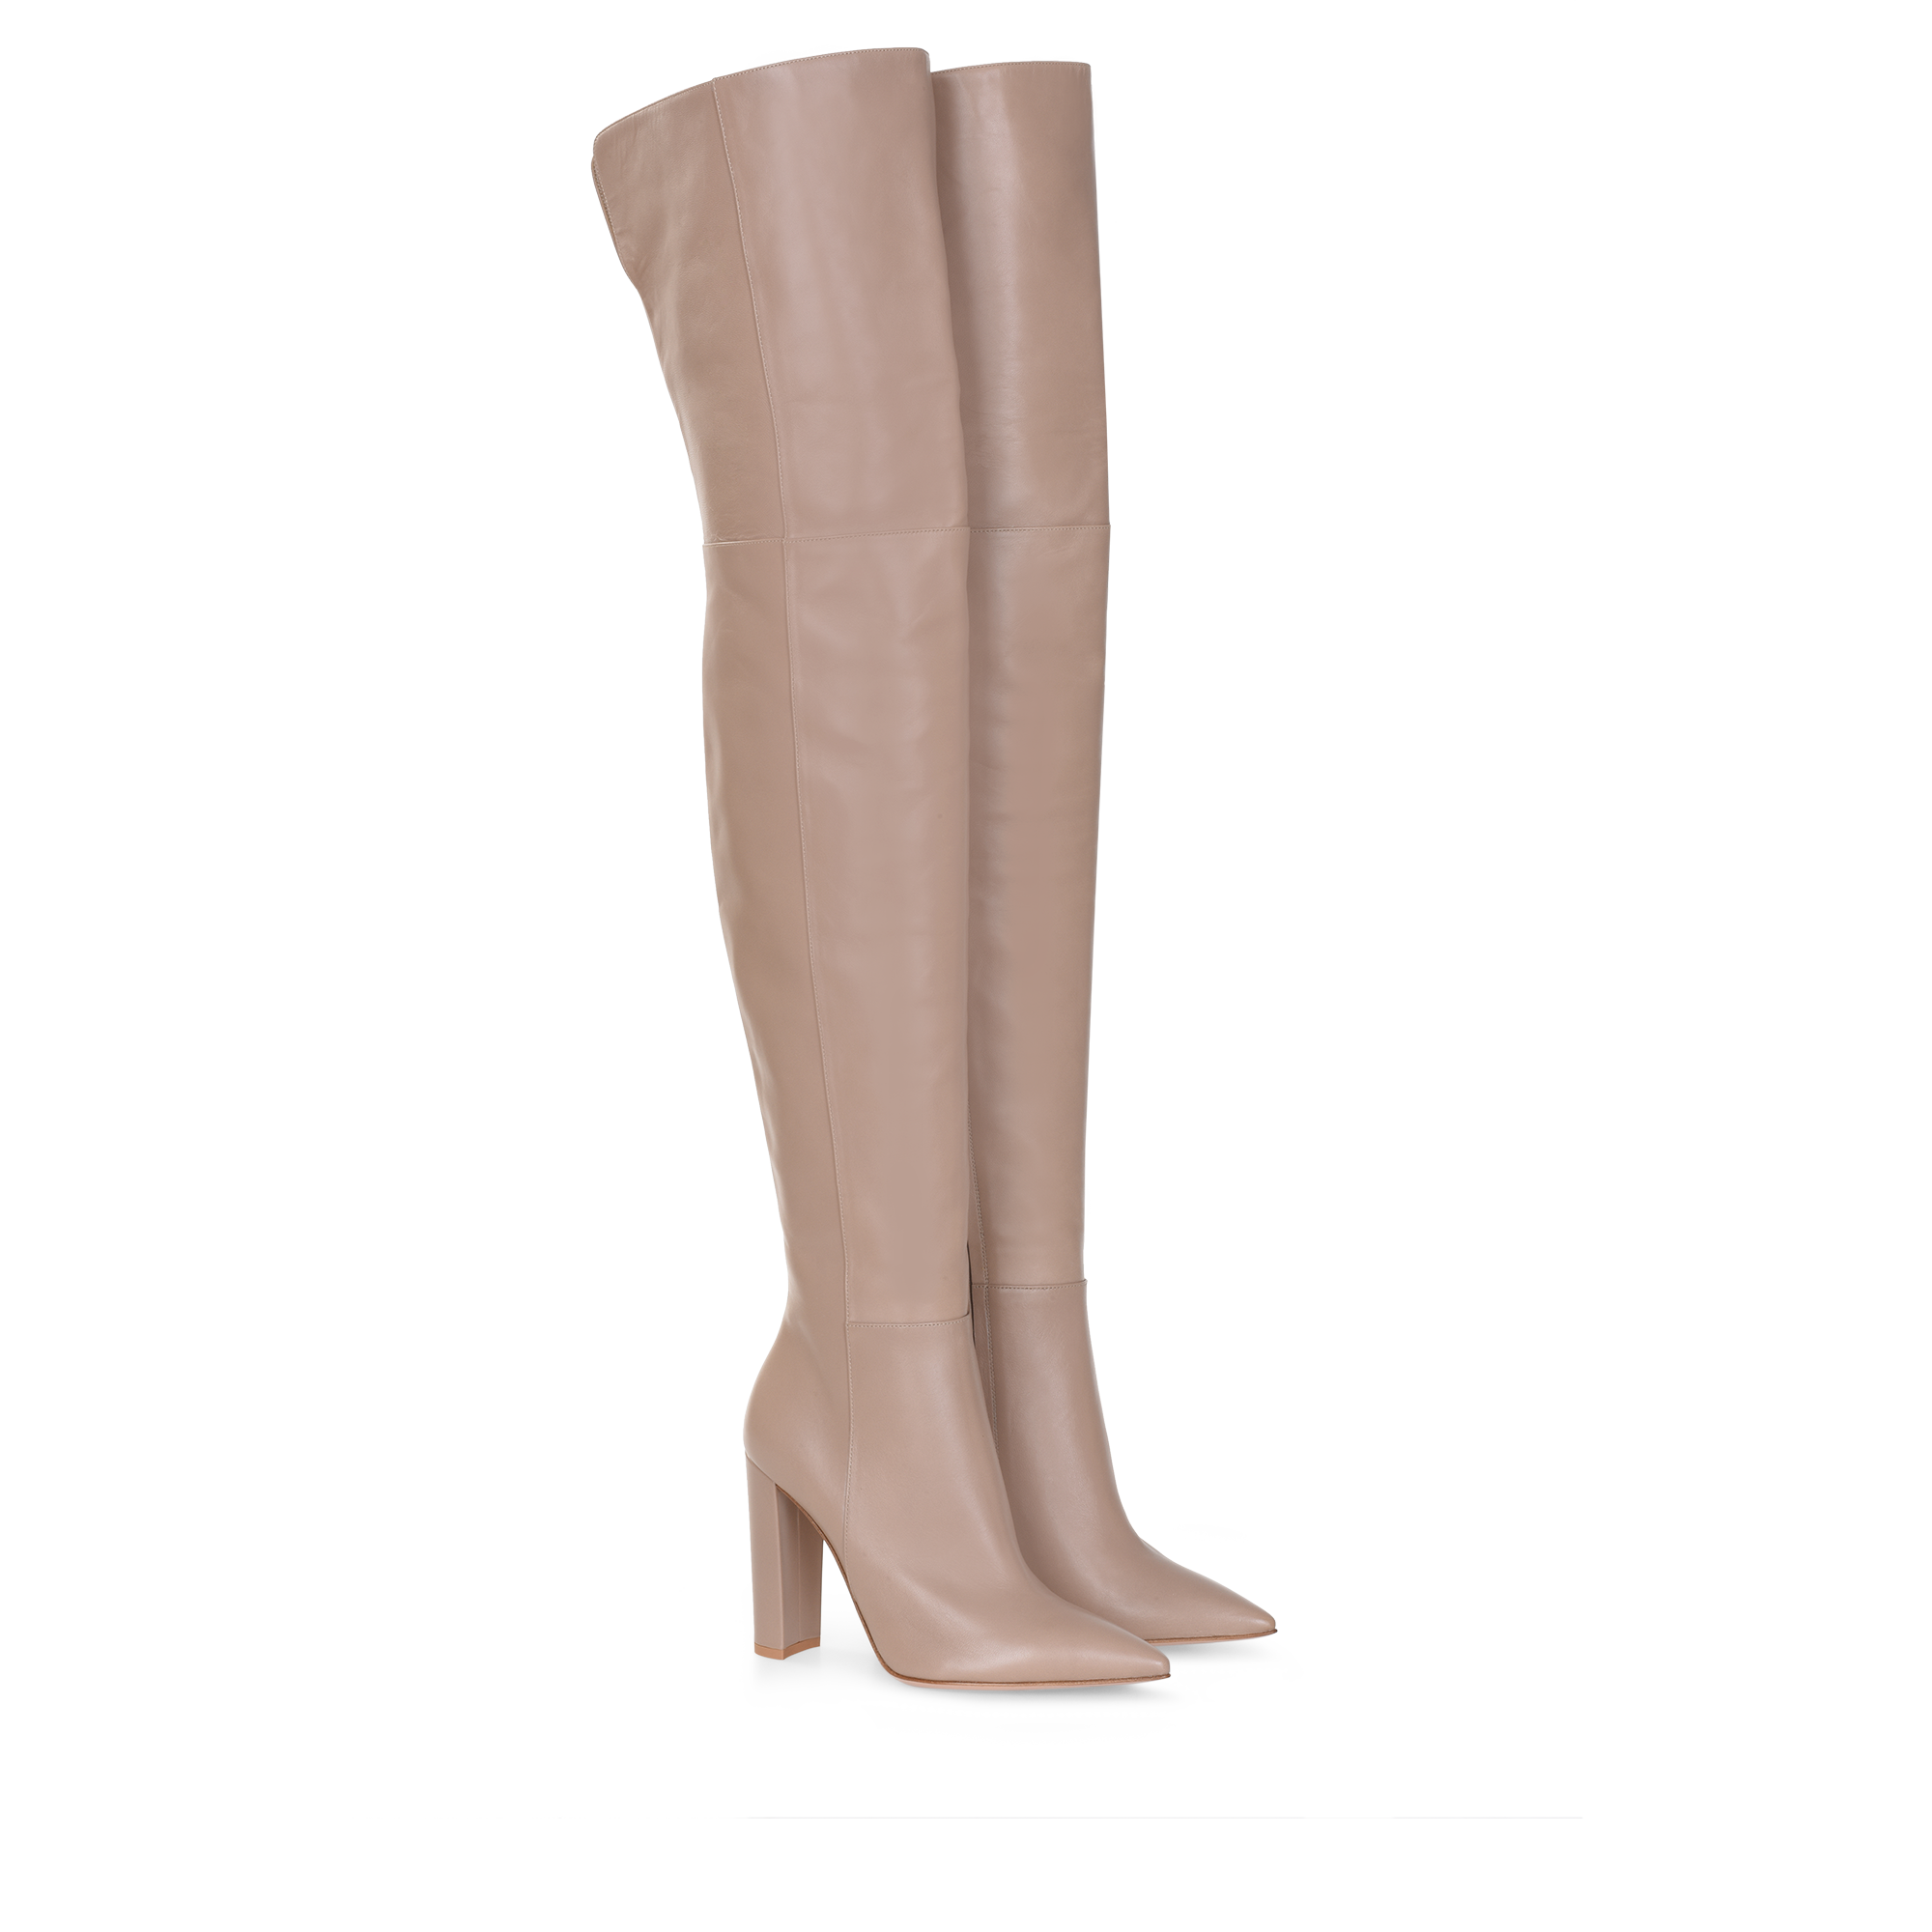 4f95b4d5b62 Piper cuissard in 2019 | BOOTS | Boots, Thigh high boots, Dress with ...